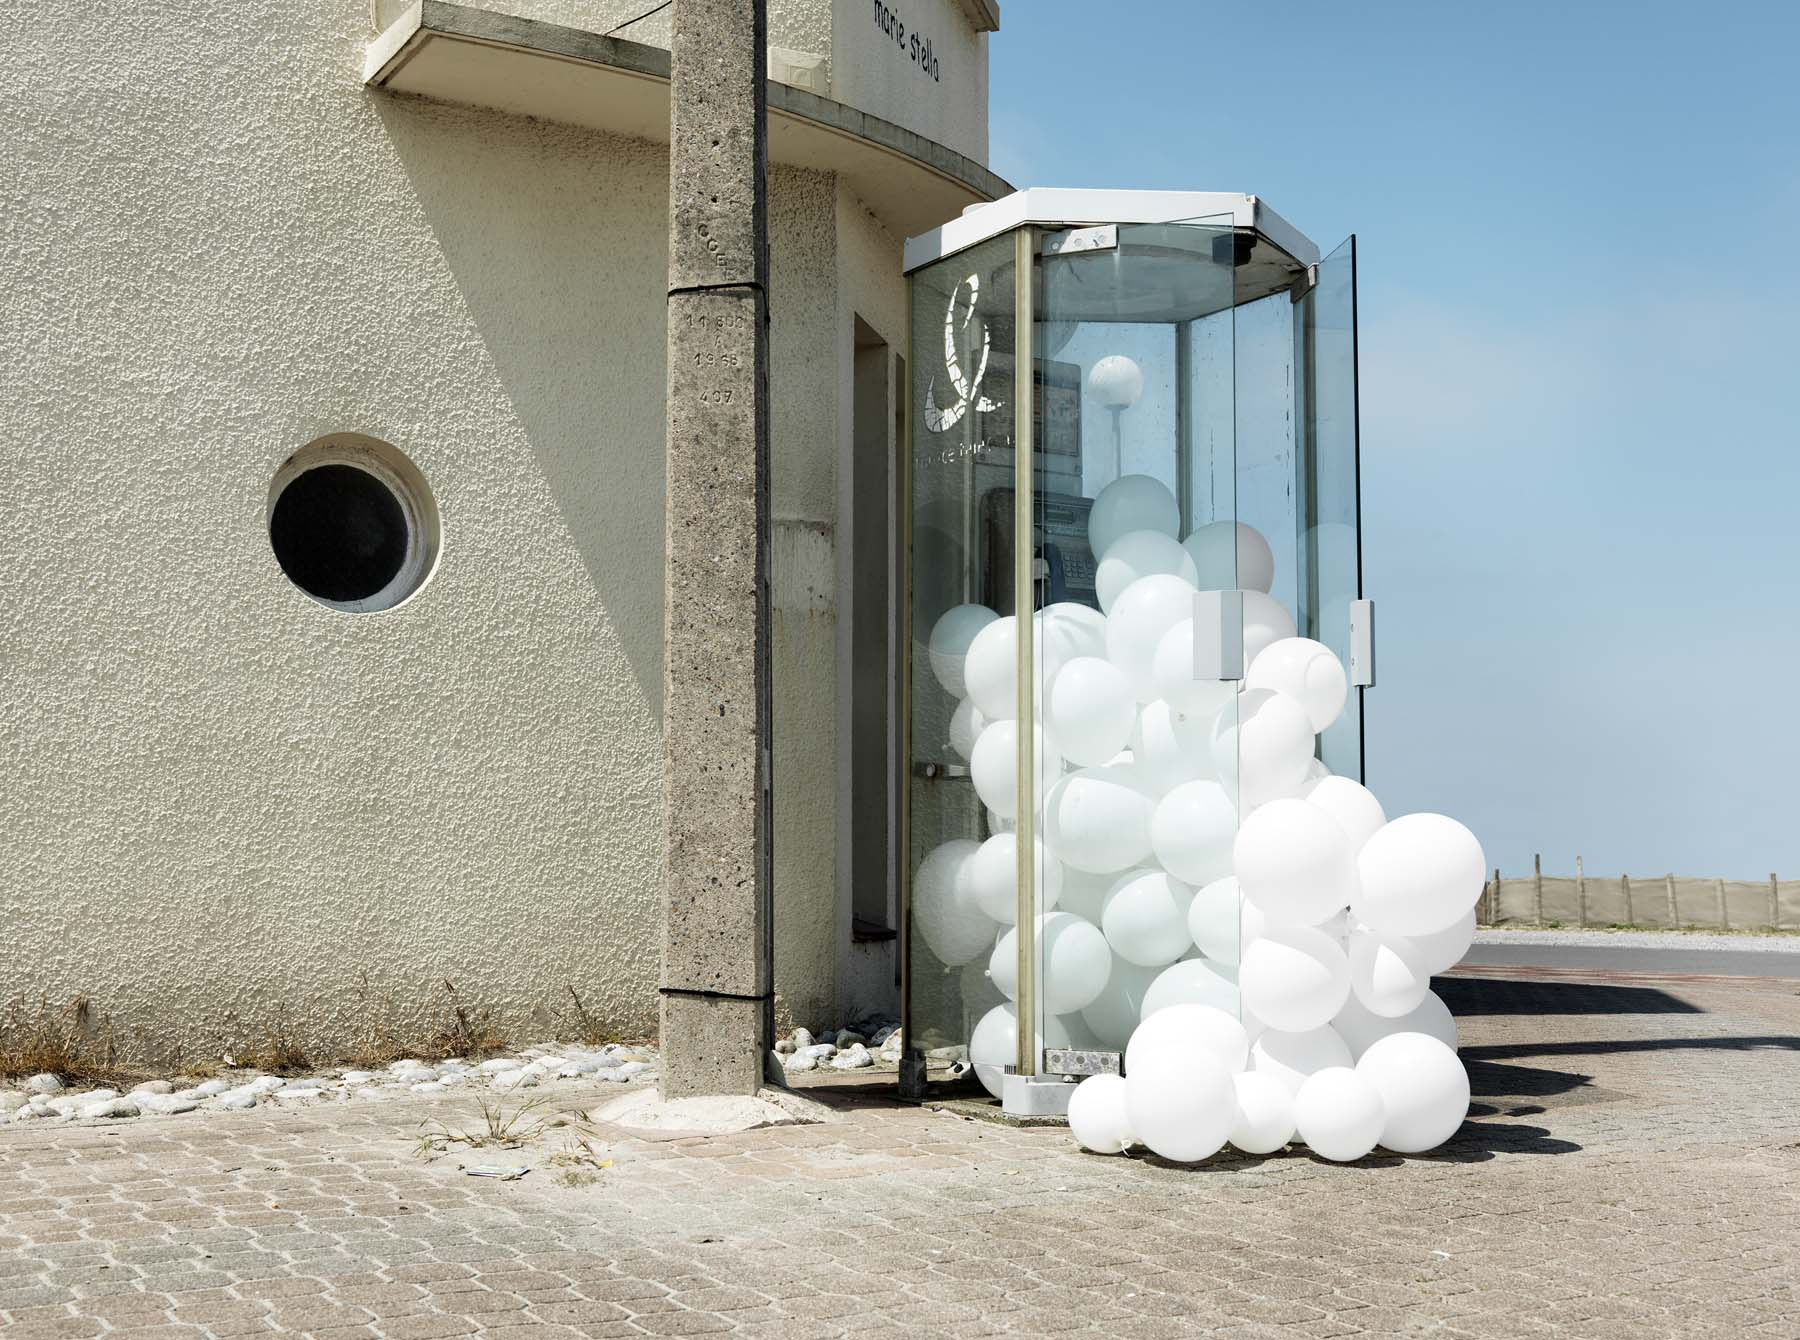 Clusters of White Balloons Photographed Invading Landscapes and Homes by Charles Petillon